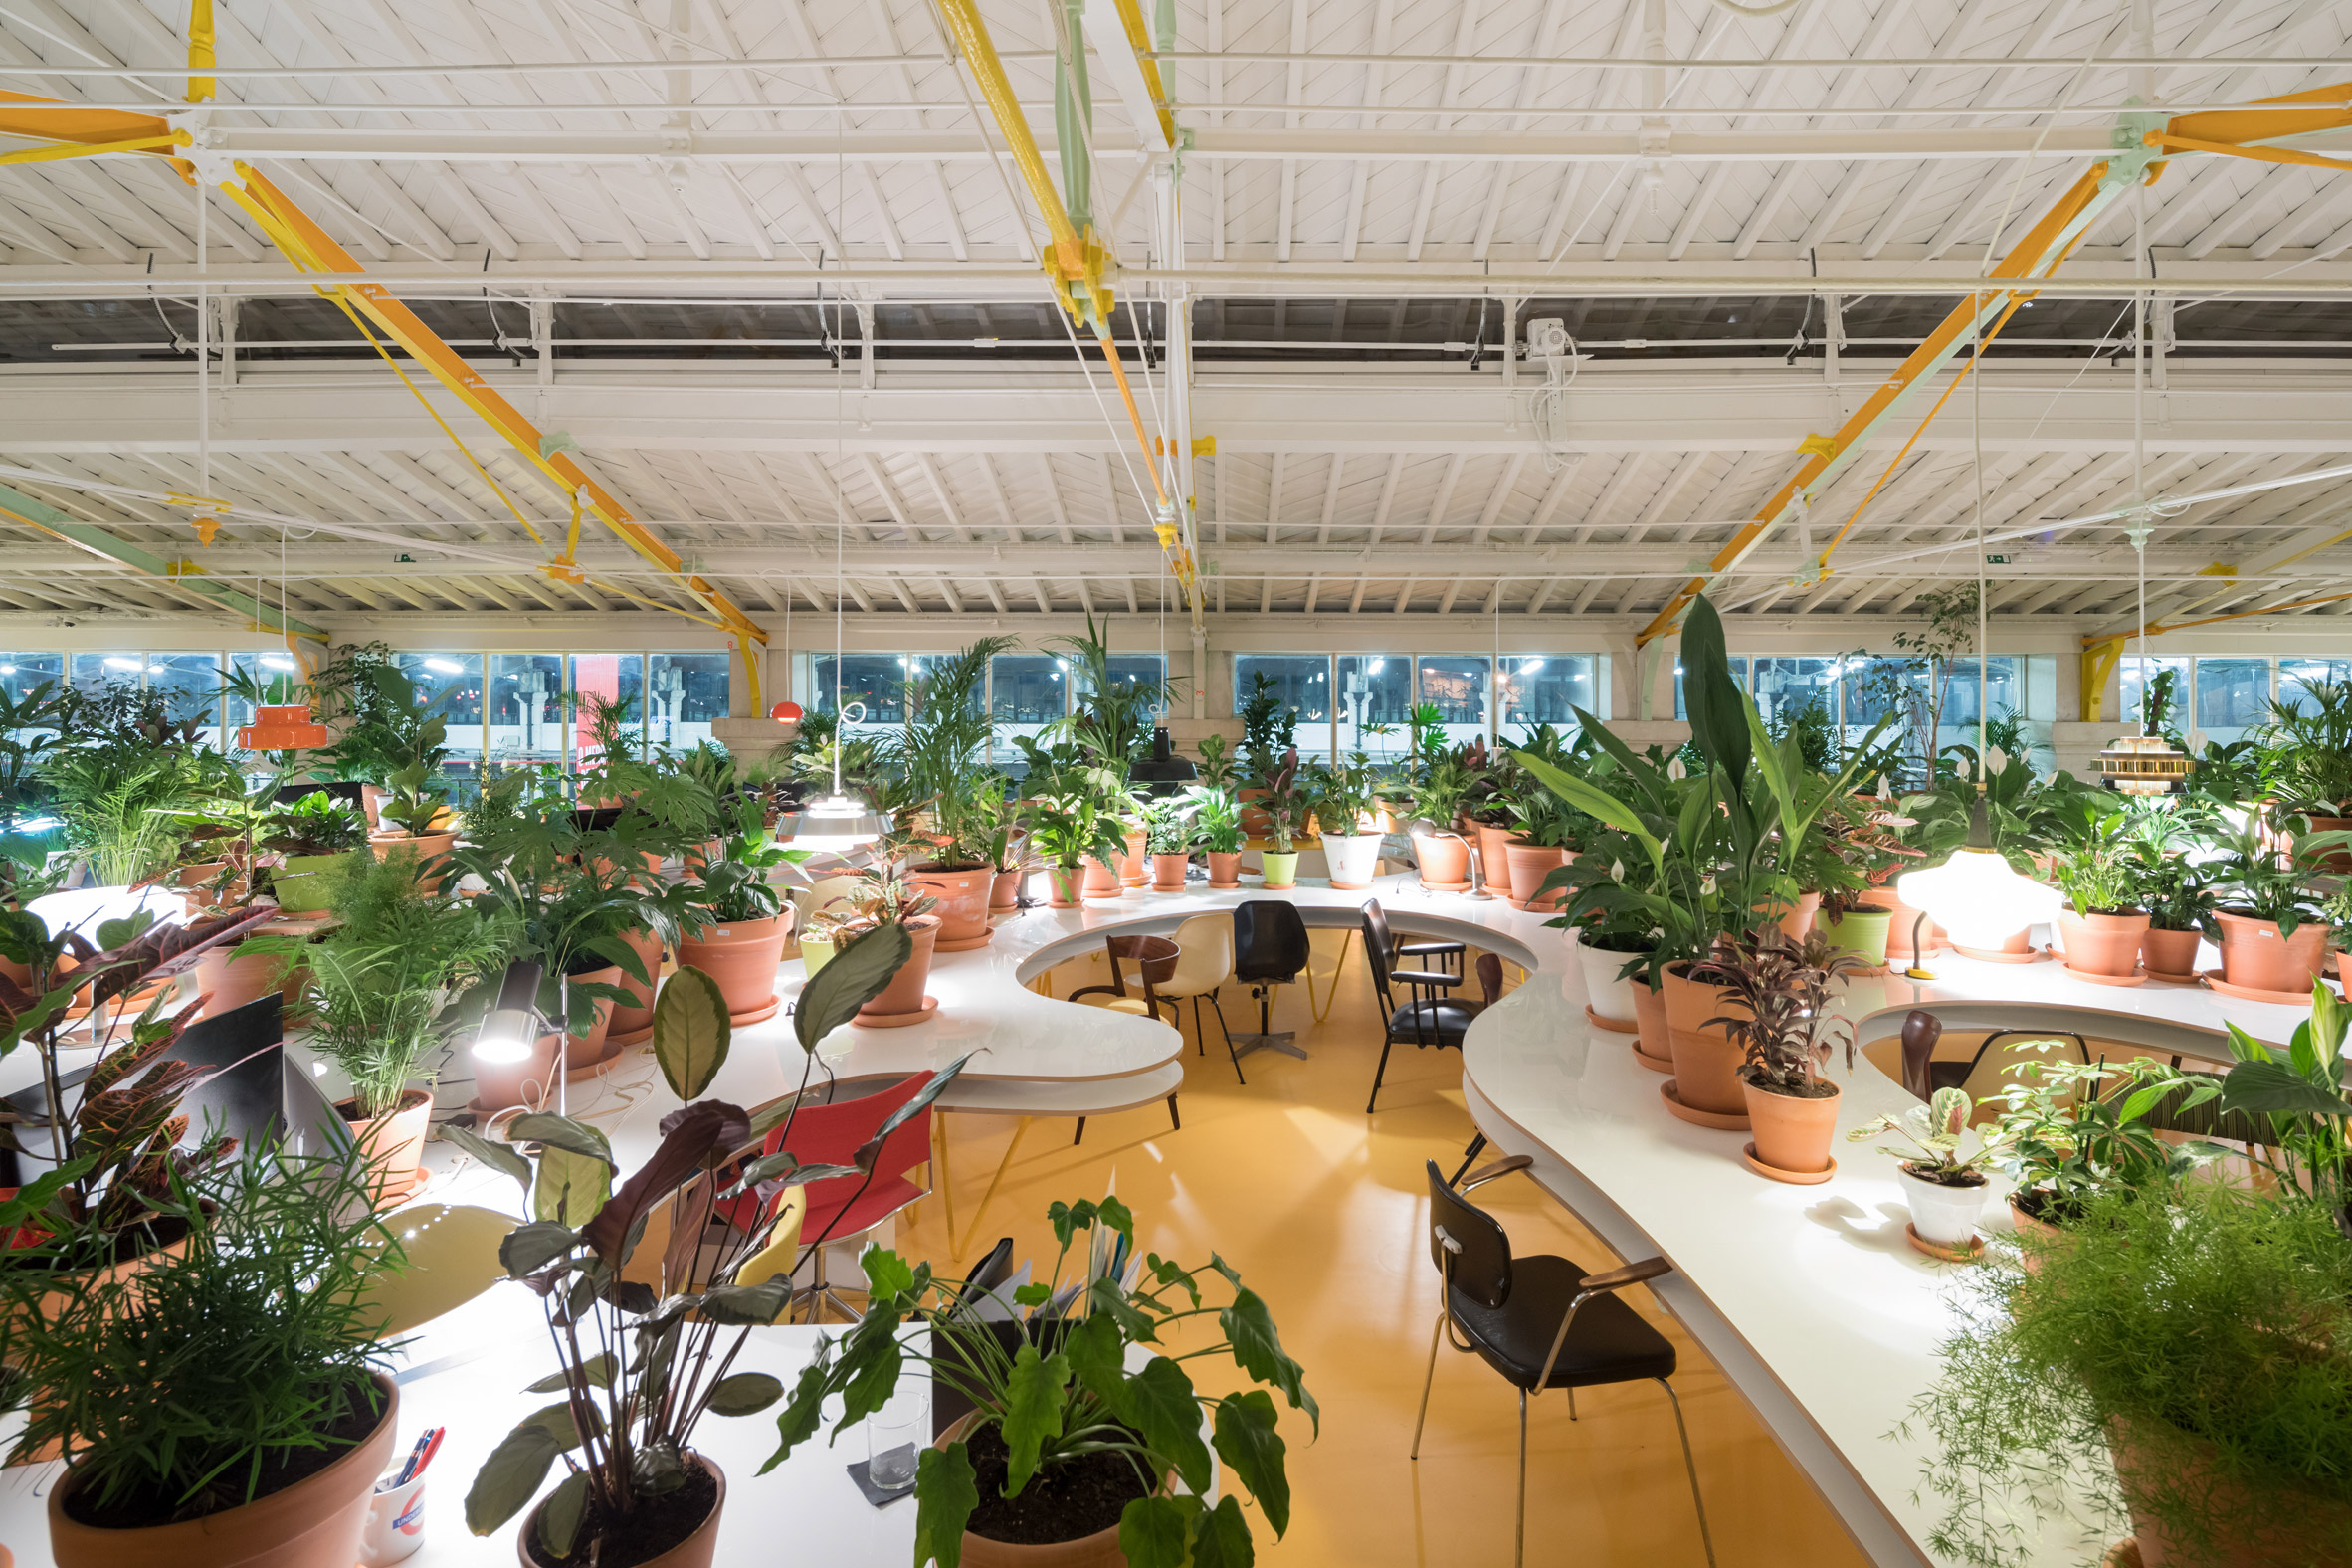 second-home-lisboa-selgascano-interiors-offices-lisbon-co-working_dezeen_2364_col_10.jpg